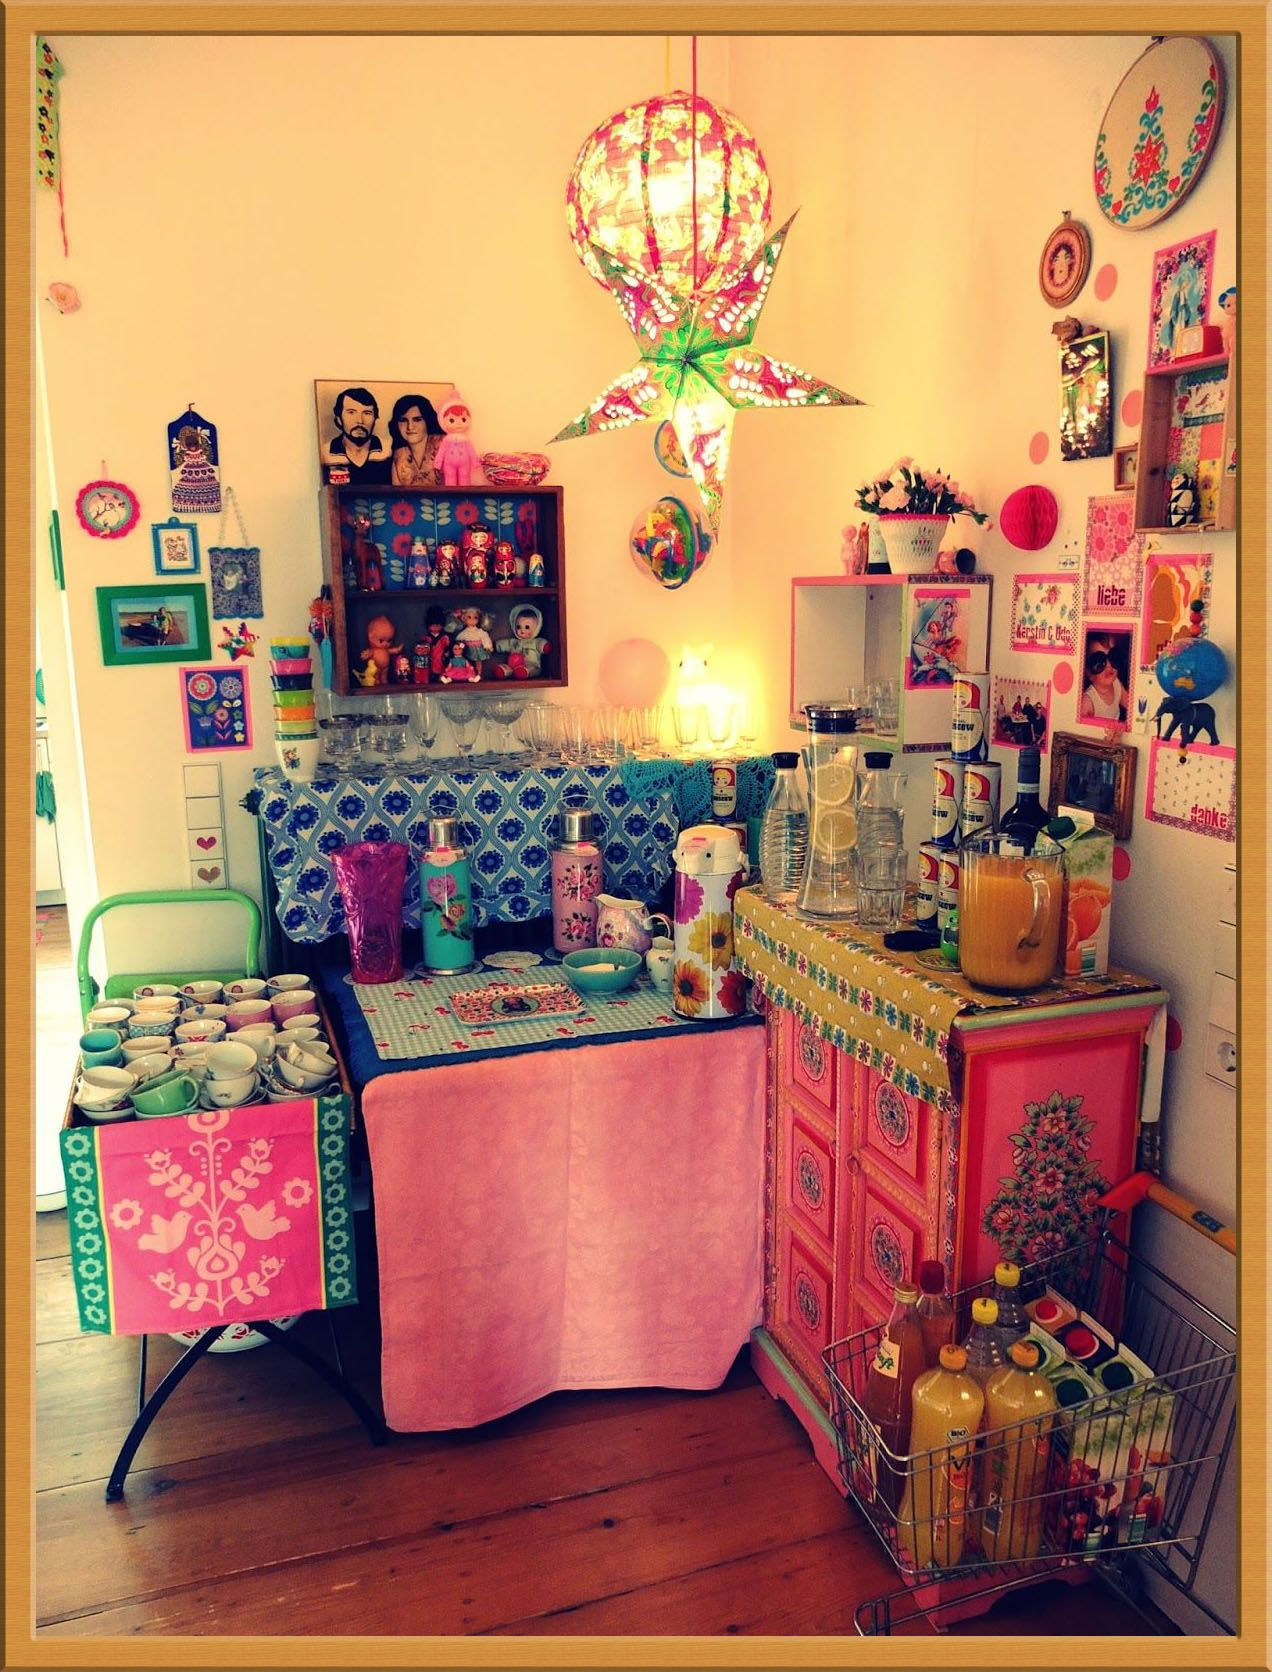 How To Make Your Product Stand Out With Bohemian Homedecor